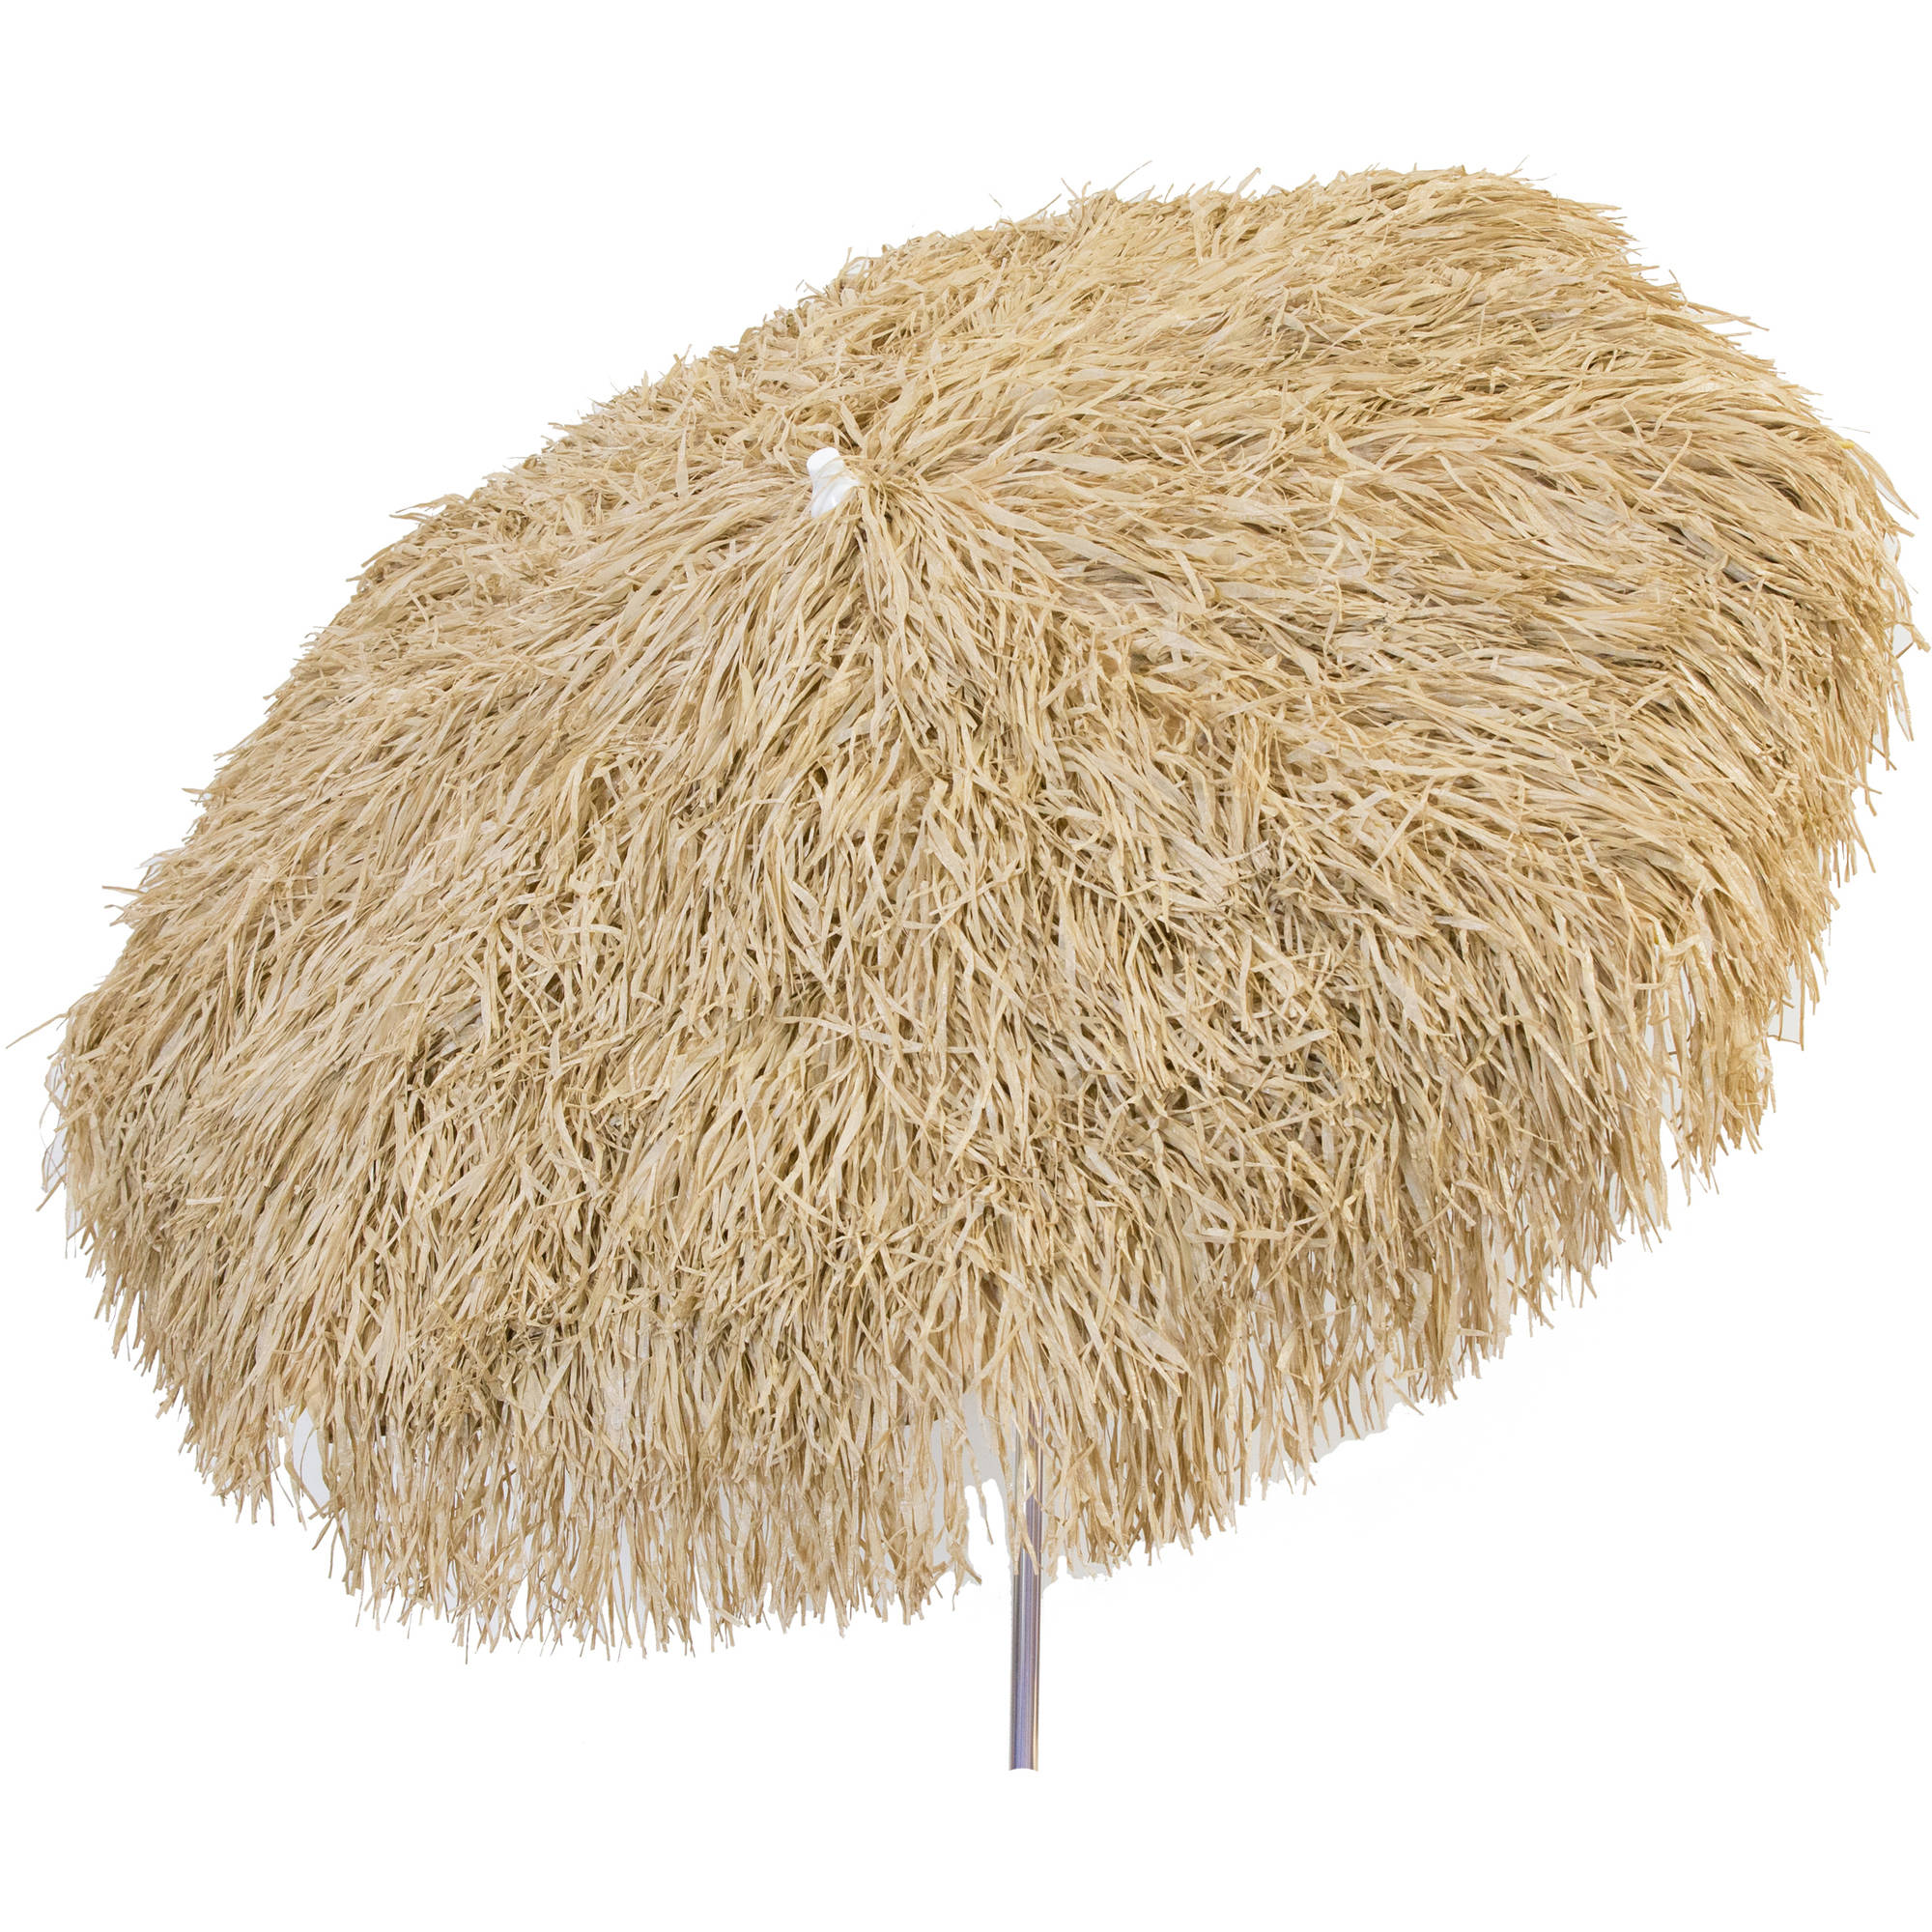 DestinationGear Palapa Tiki Umbrella 6' Whiskey Brown Patio Pole